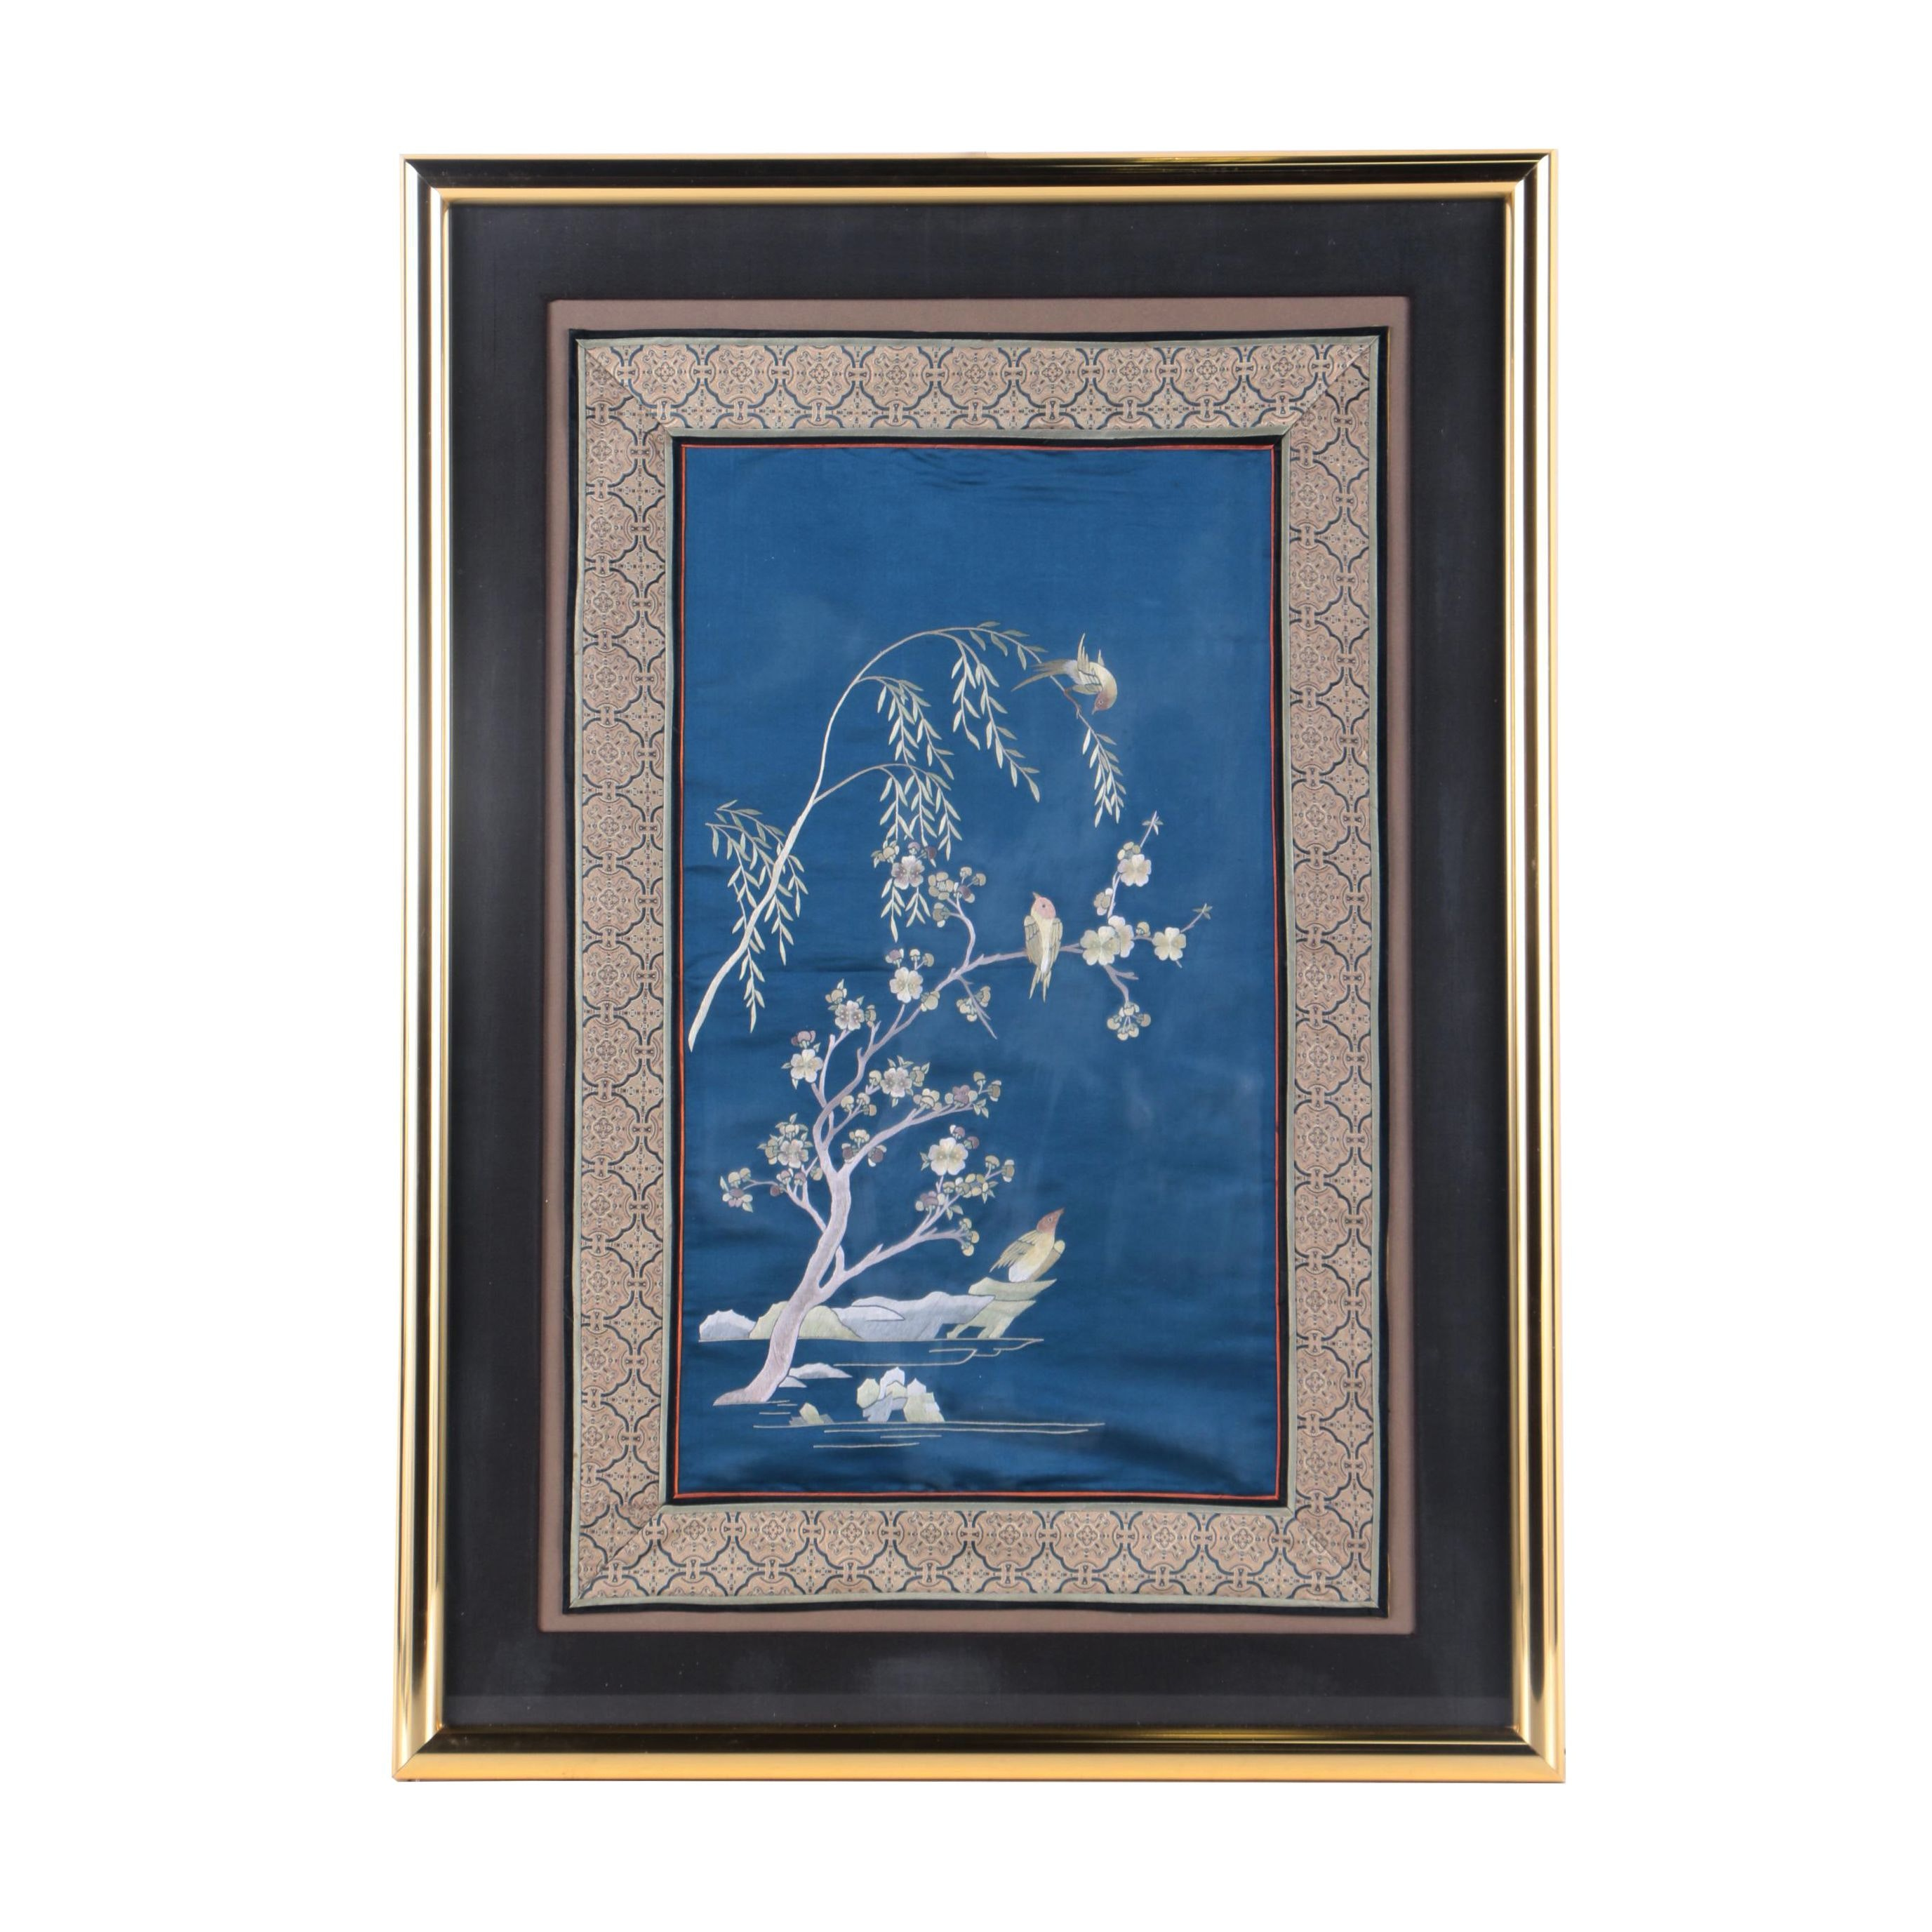 East Asian Style Embroidery on Silk of Nature Scene